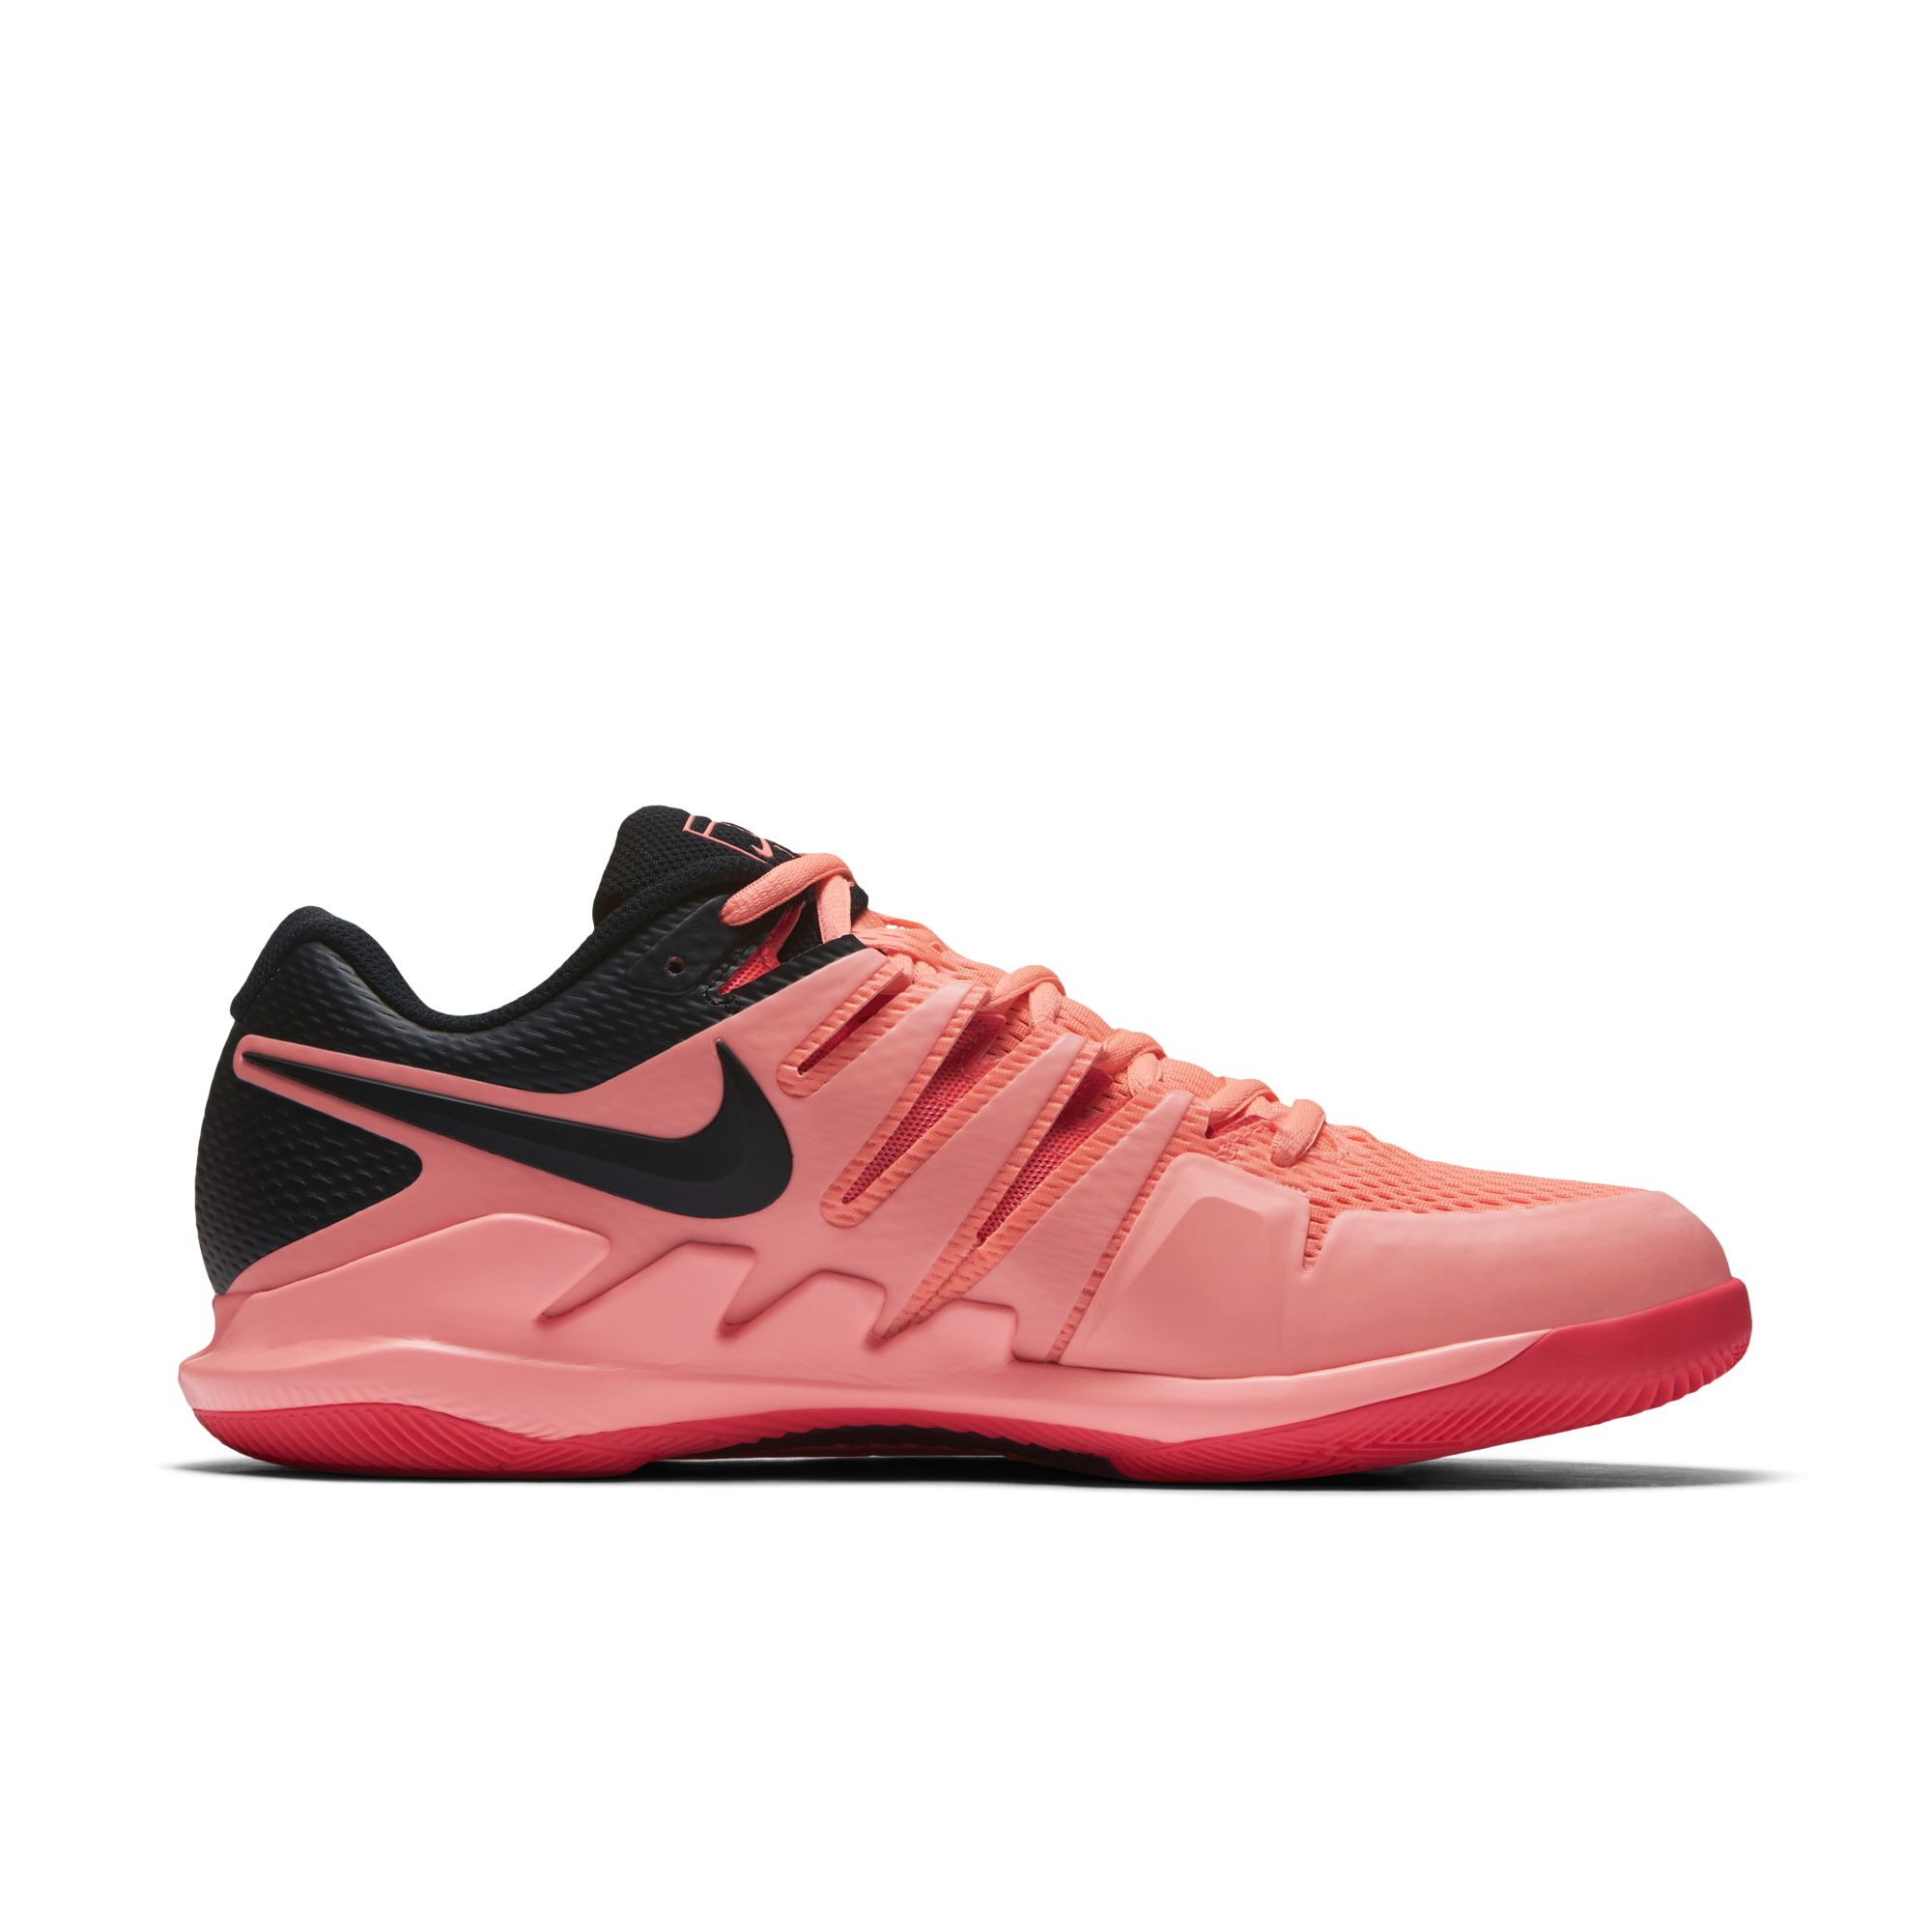 c919a731ce70 roger federer nike air zoom vapor x solar red 3 - WearTesters